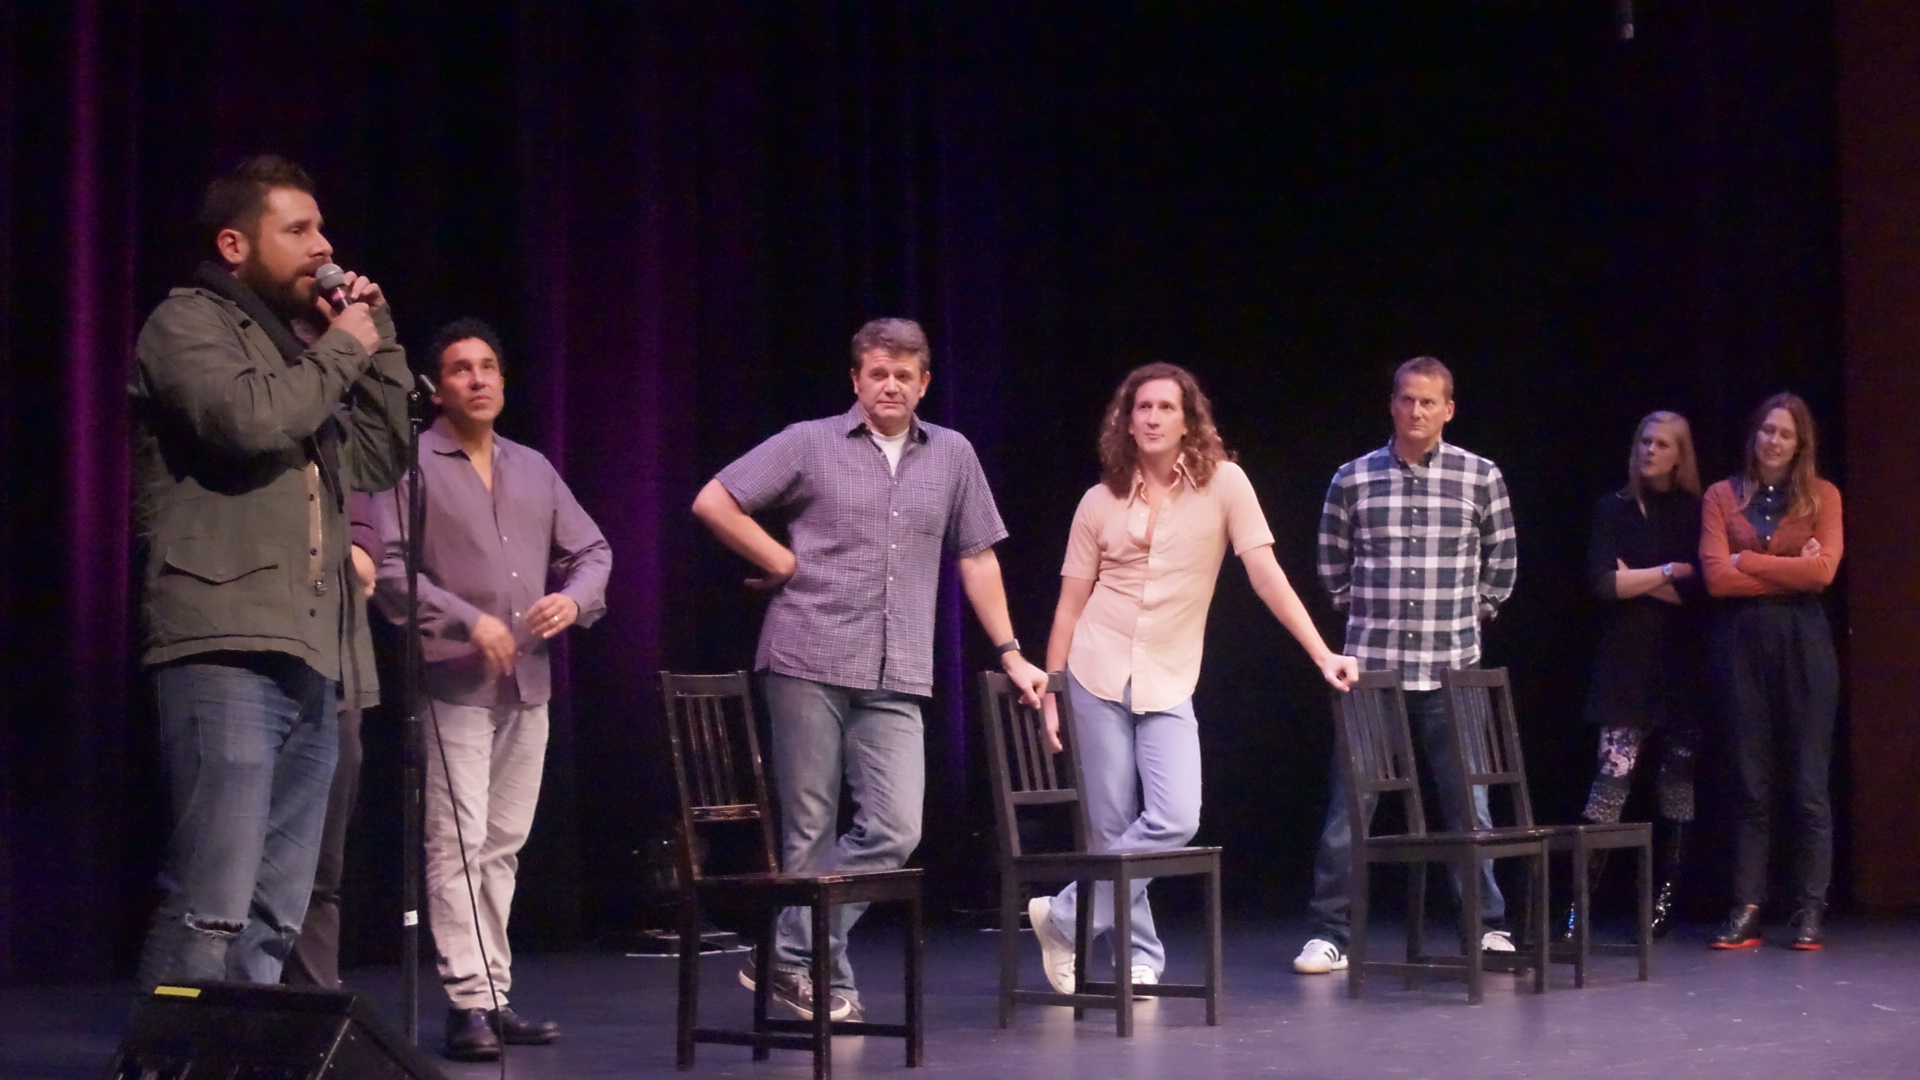 James Roday, Oscar Nunez, John Michael Higgins, Ian Brennan, Michael Hitchcock, Janet Varney and Jessica Makinson at Theme Park Improv at SF Sketchfest, January 16, 2016. Photo by Steve Agee.